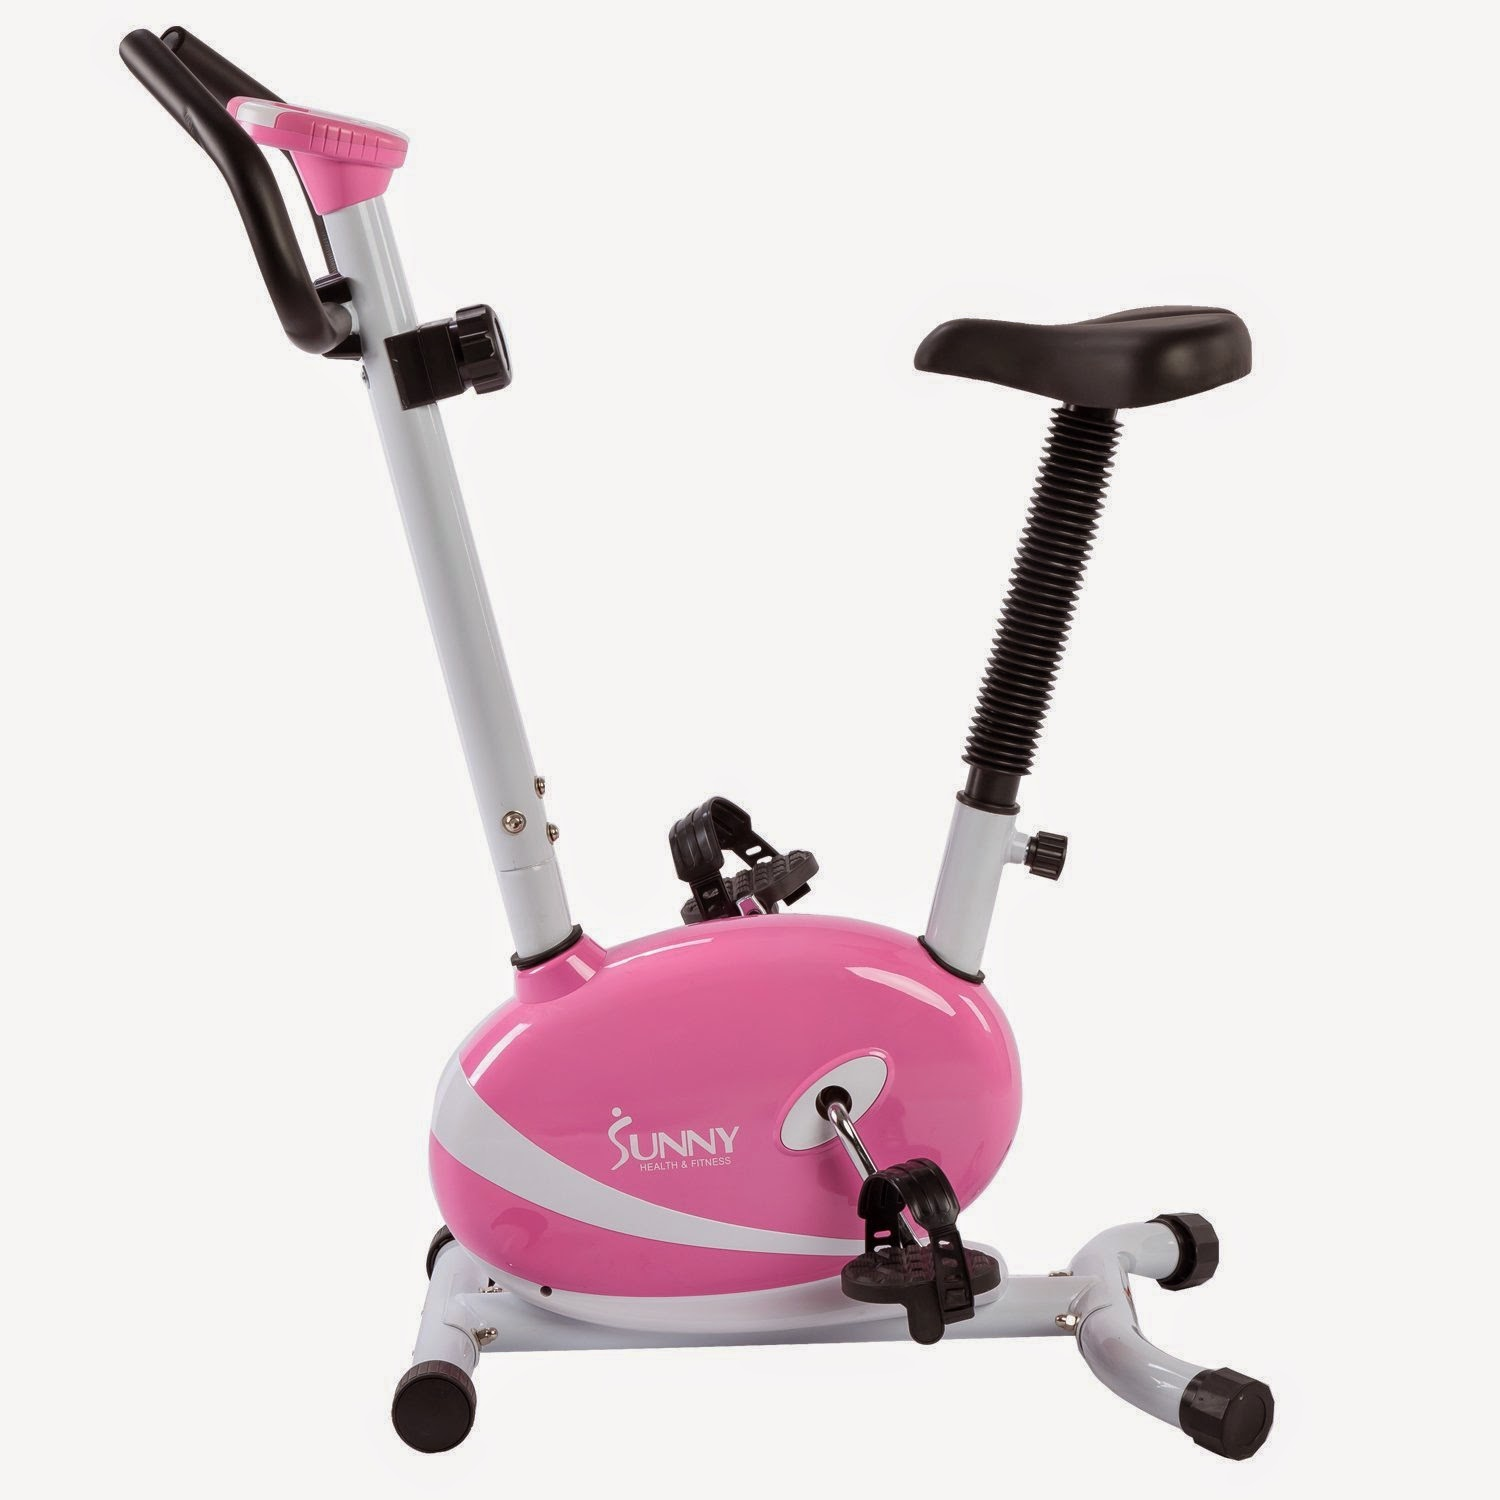 Sunny Health & Fitness Pink Magnetic Upright Bike, review features